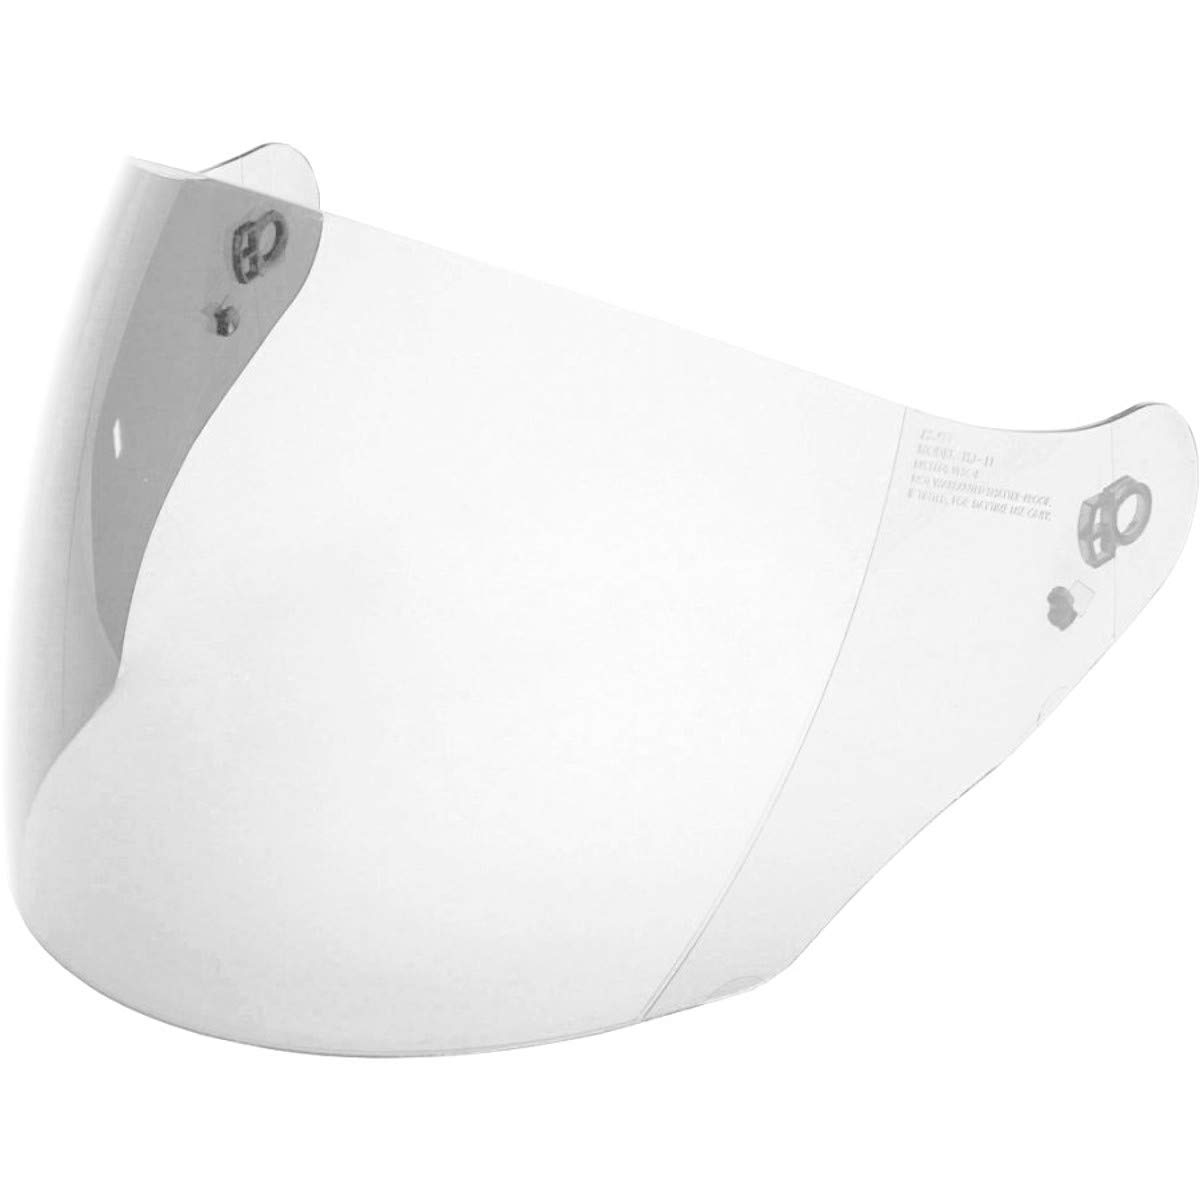 HJC Helmets Shield HJ-11 AC-3 CL-33 Harley Touring Motorcycle Helmet Accessories - Color: Clear